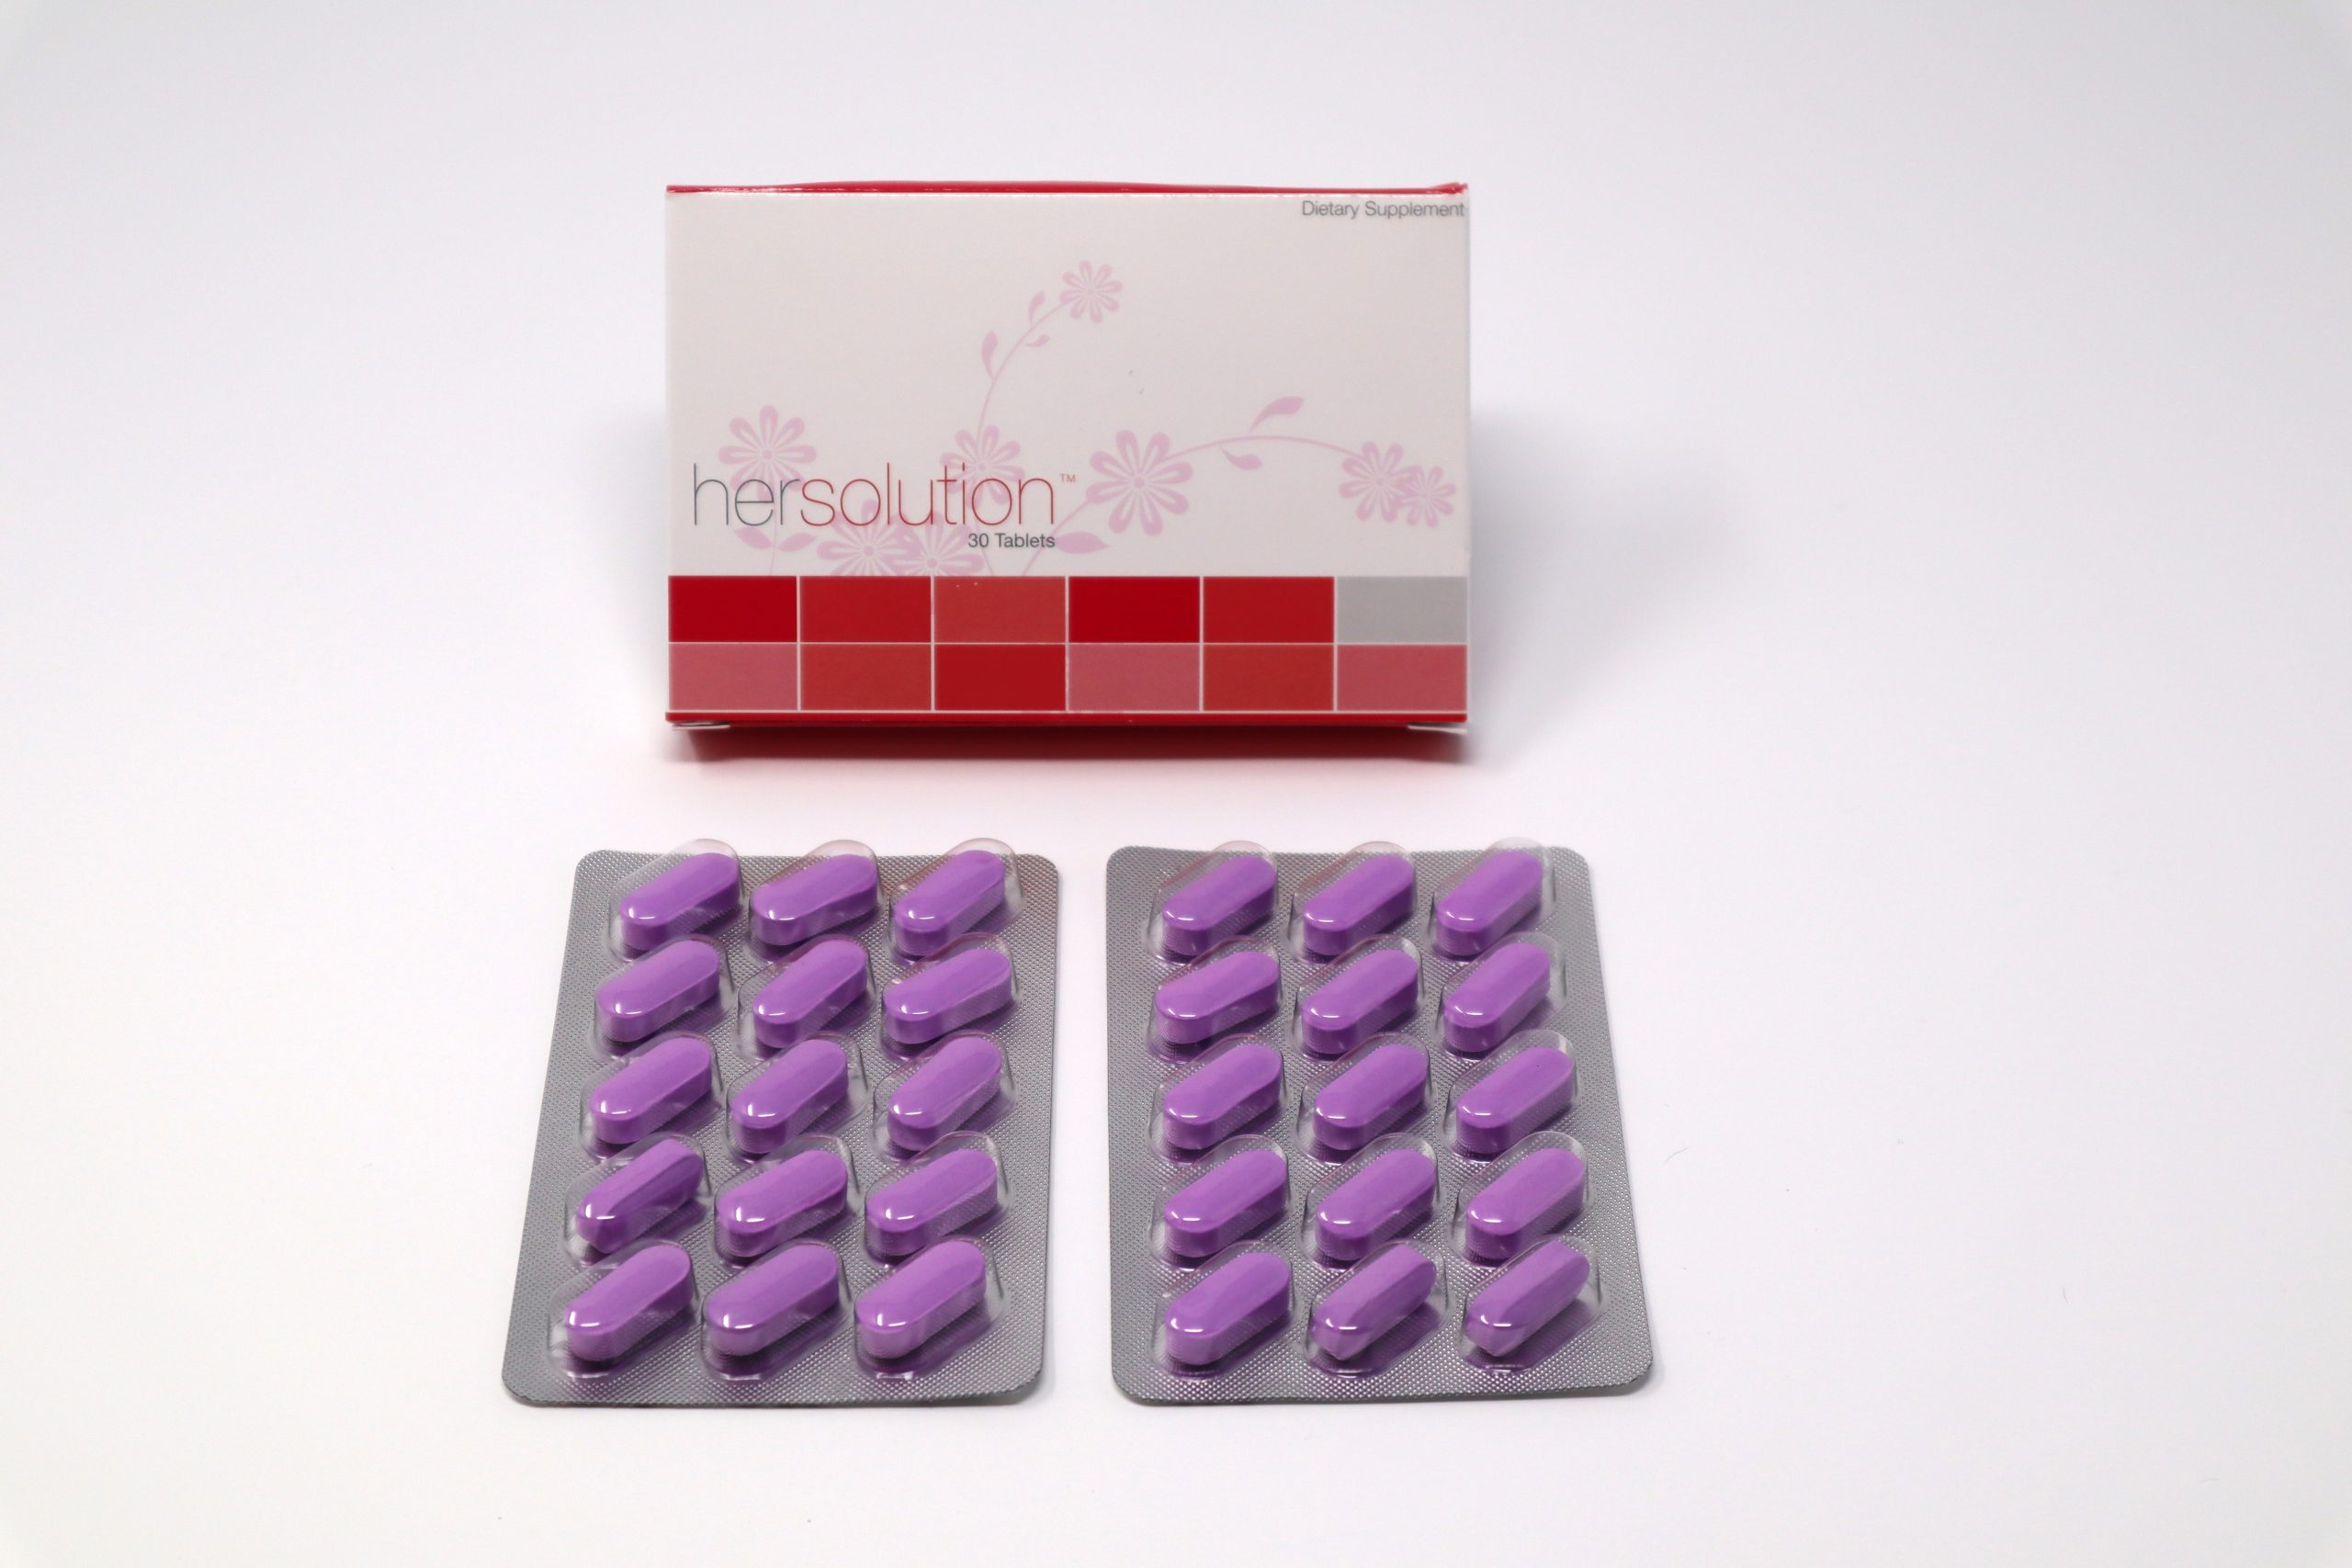 image of hersolution box and purple supplement pills